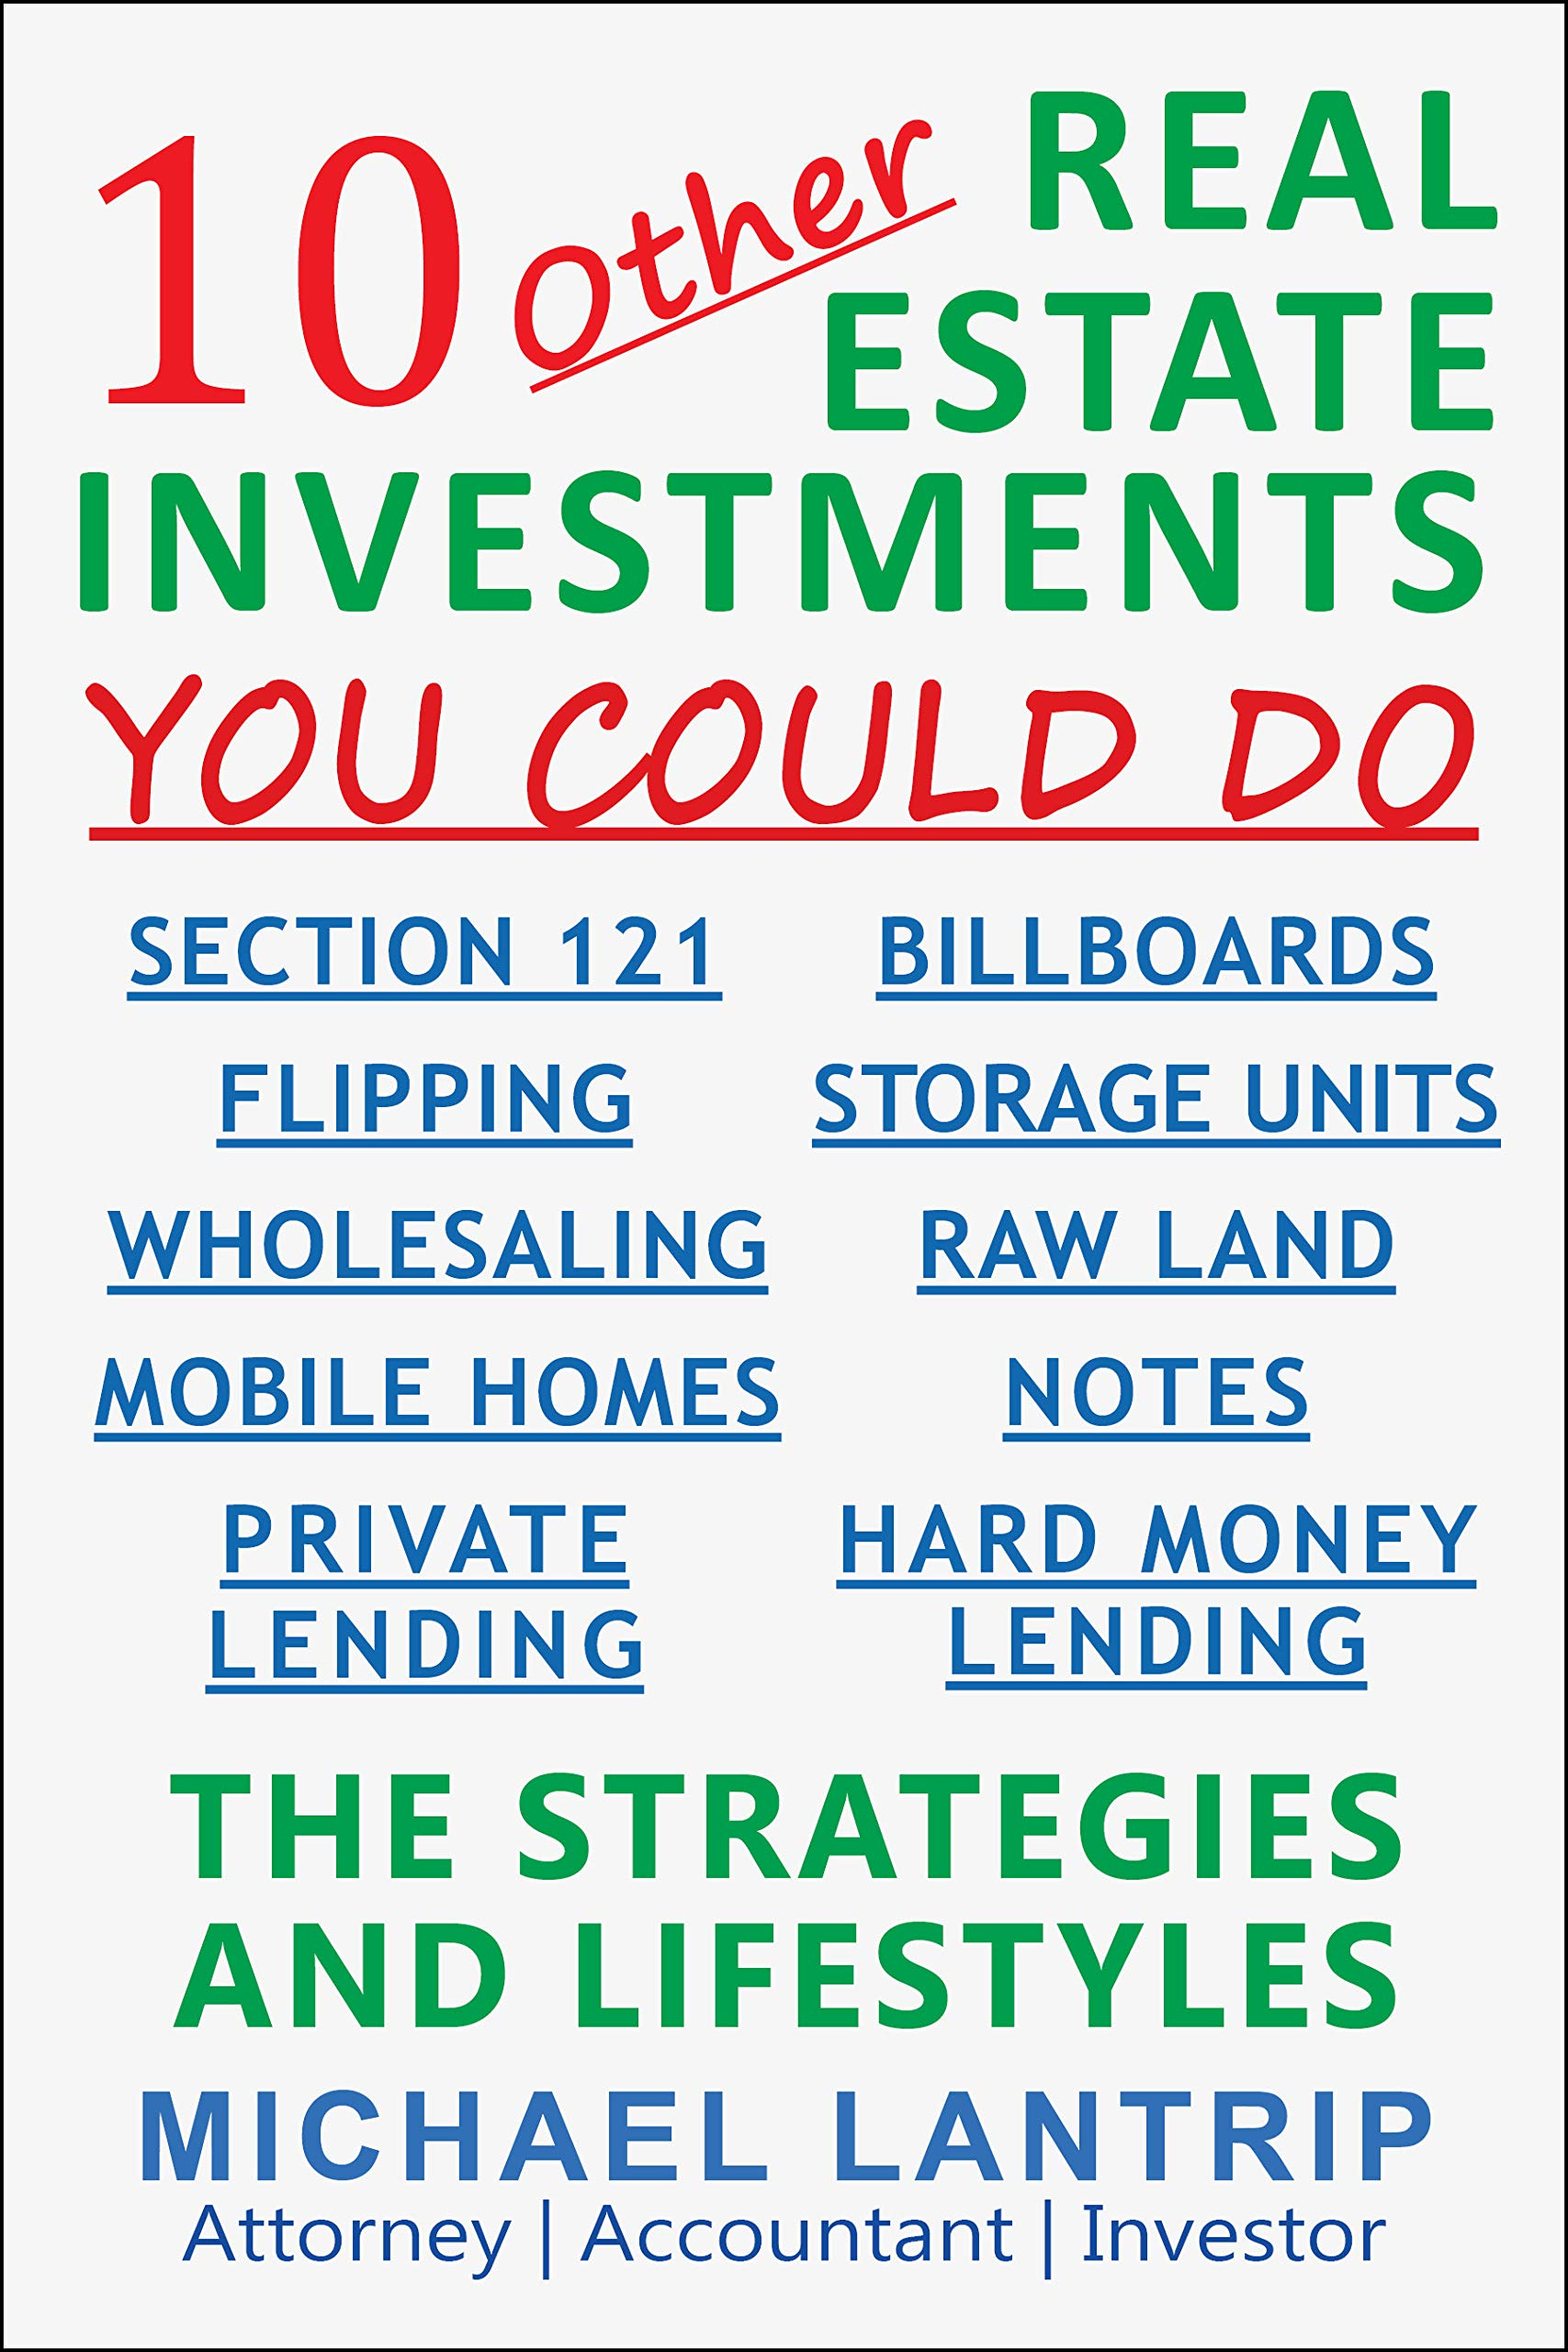 10 Other Real Estate Investments: Section 121, Billboards, Raw Land, Storage Units, Wholesaling, Notes, Mobile Homes, Flip...